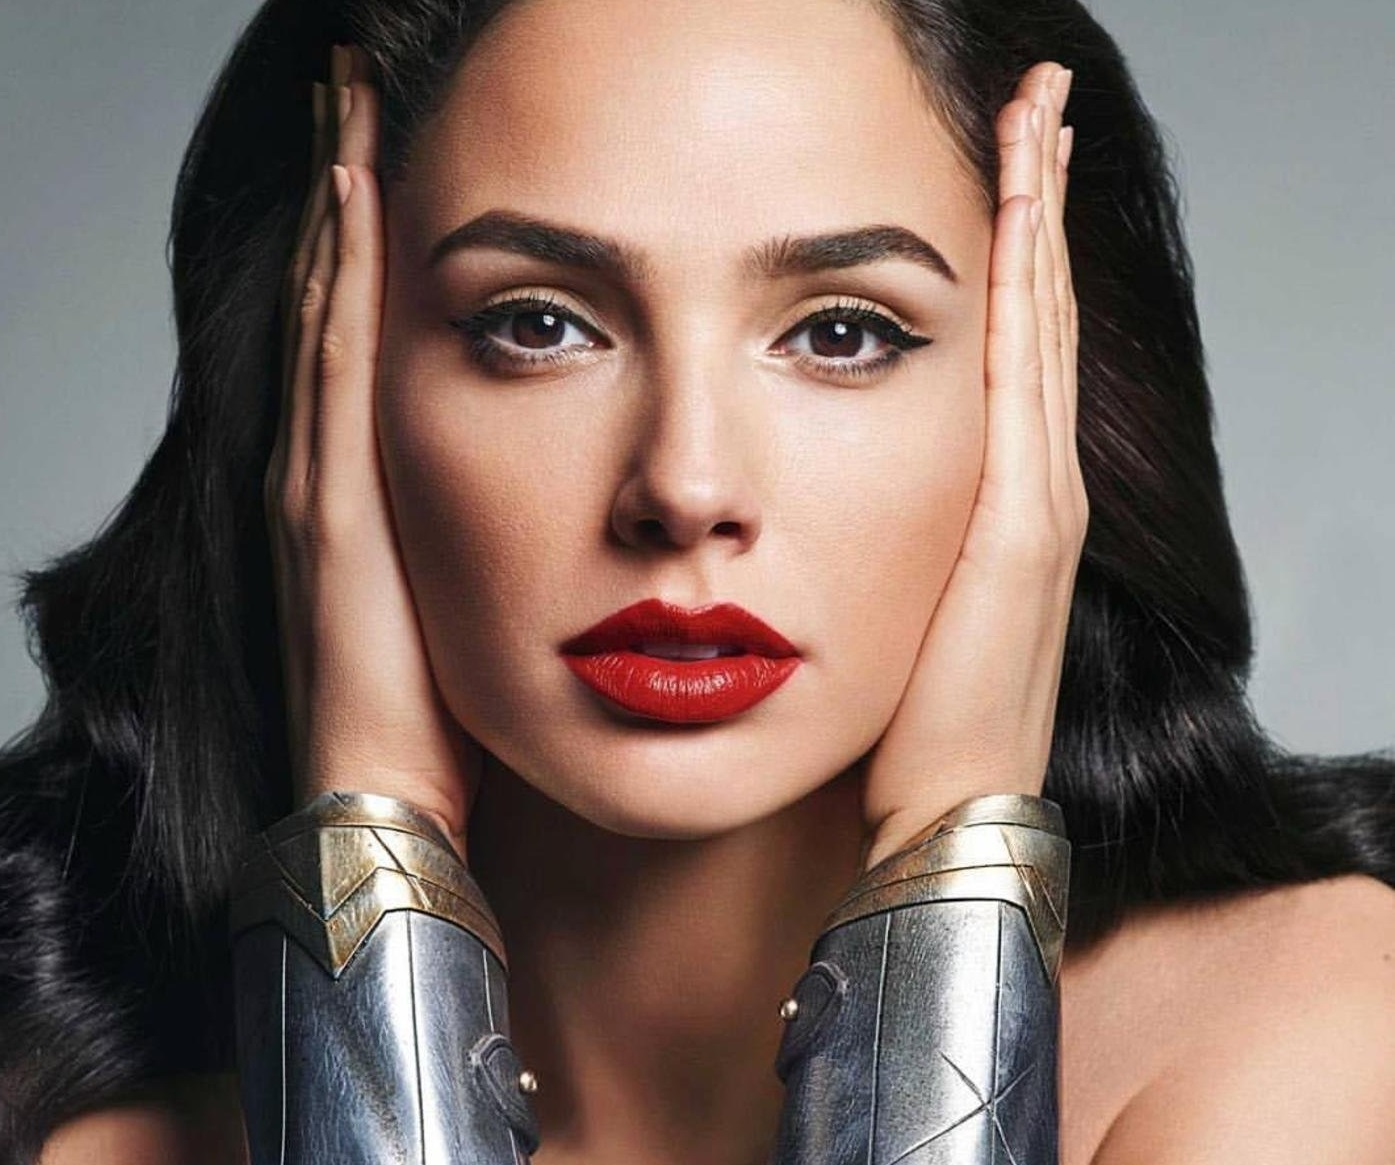 """Gal Gadot (gal_gadot / 30.11.2017): """"Hello Everyone! Im coming to Long Island, NY December 9 & 10 to meet you @acecomiccon #ad! I am so excited to see you, and be reunited with some of the #JusticeLeague as @henrycavill, @prideofgypsies, @rehsifyar, #EzraMiller, & #CiarnHinds are coming too! For tickets and more info, check out www.aceuniverse.com. I hope you can make it!, Image: 356558791, License: Rights-managed, Restrictions: , Model Release: no, Credit line: Profimedia, Face To Face A"""